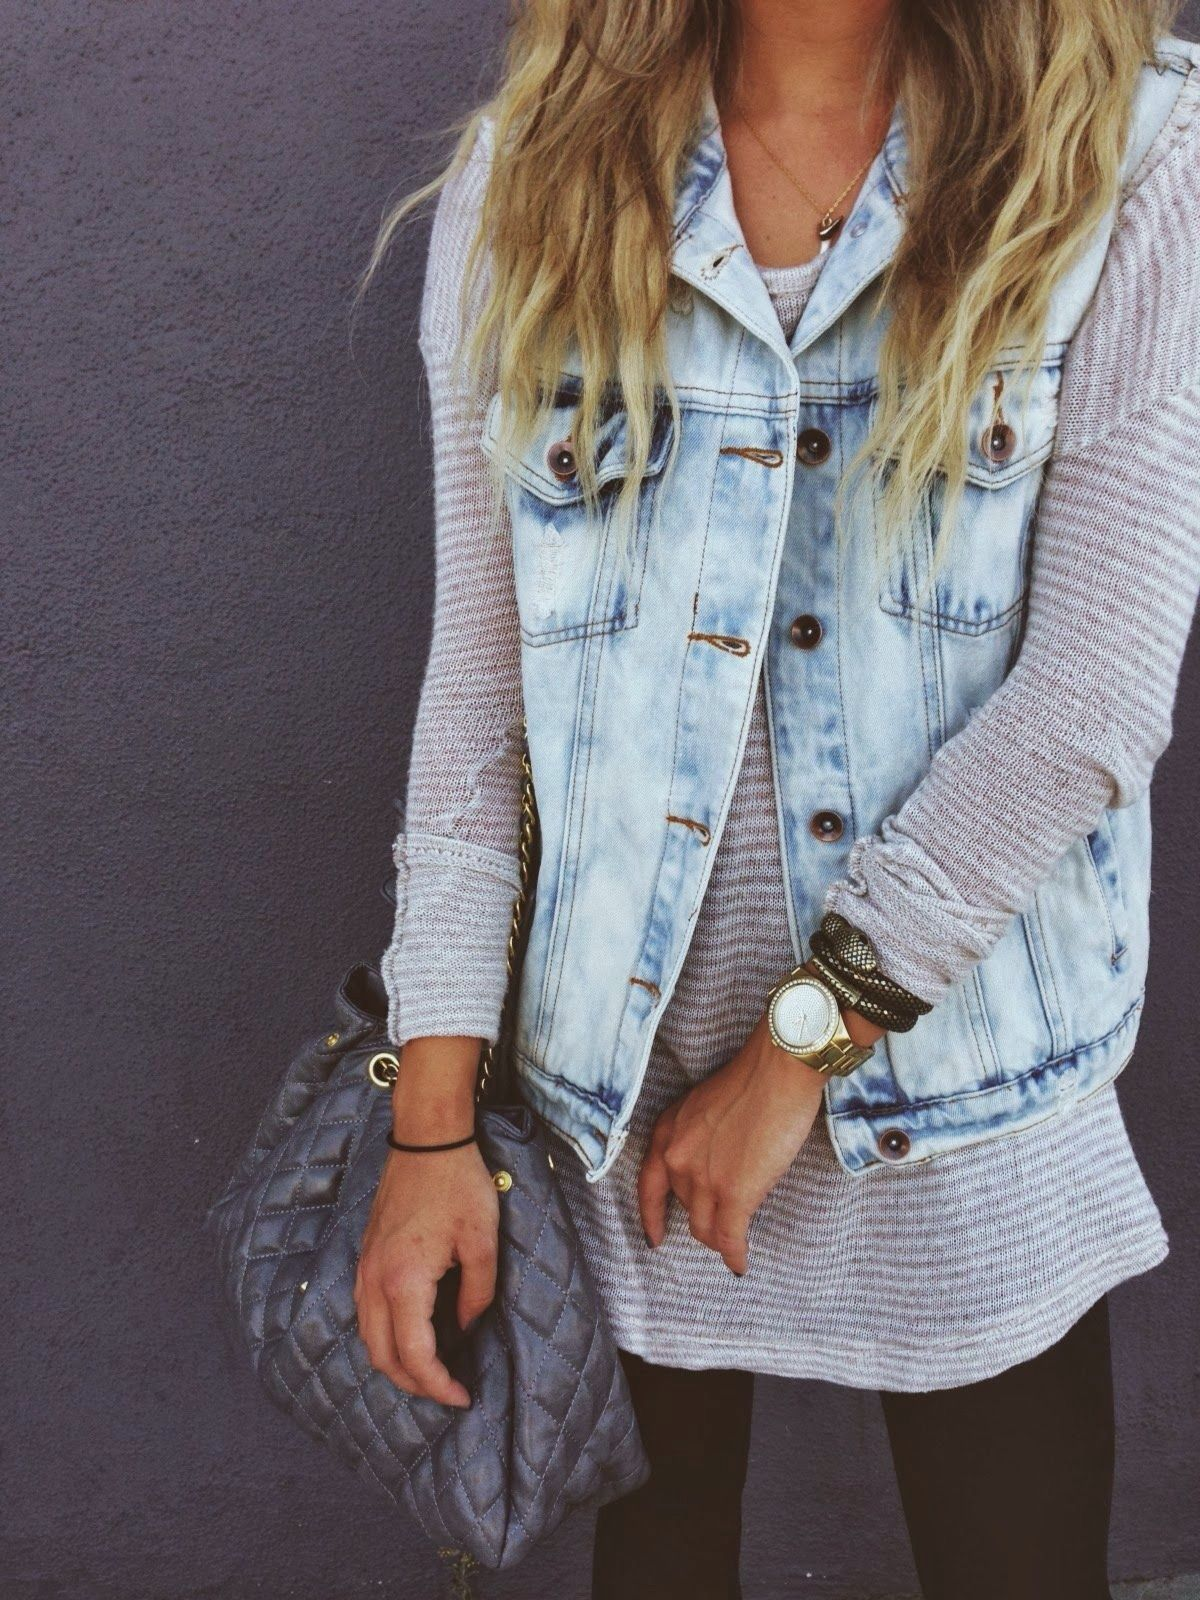 Today's denim vests can still convey a cowboy look and feel, but they can also achieve other looks. For instance, a distressed one embellished with metal studs is the perfect thing to pair with a black leather mini skirt and knee-high black leather boots. Wear a white button down shirt underneath for .